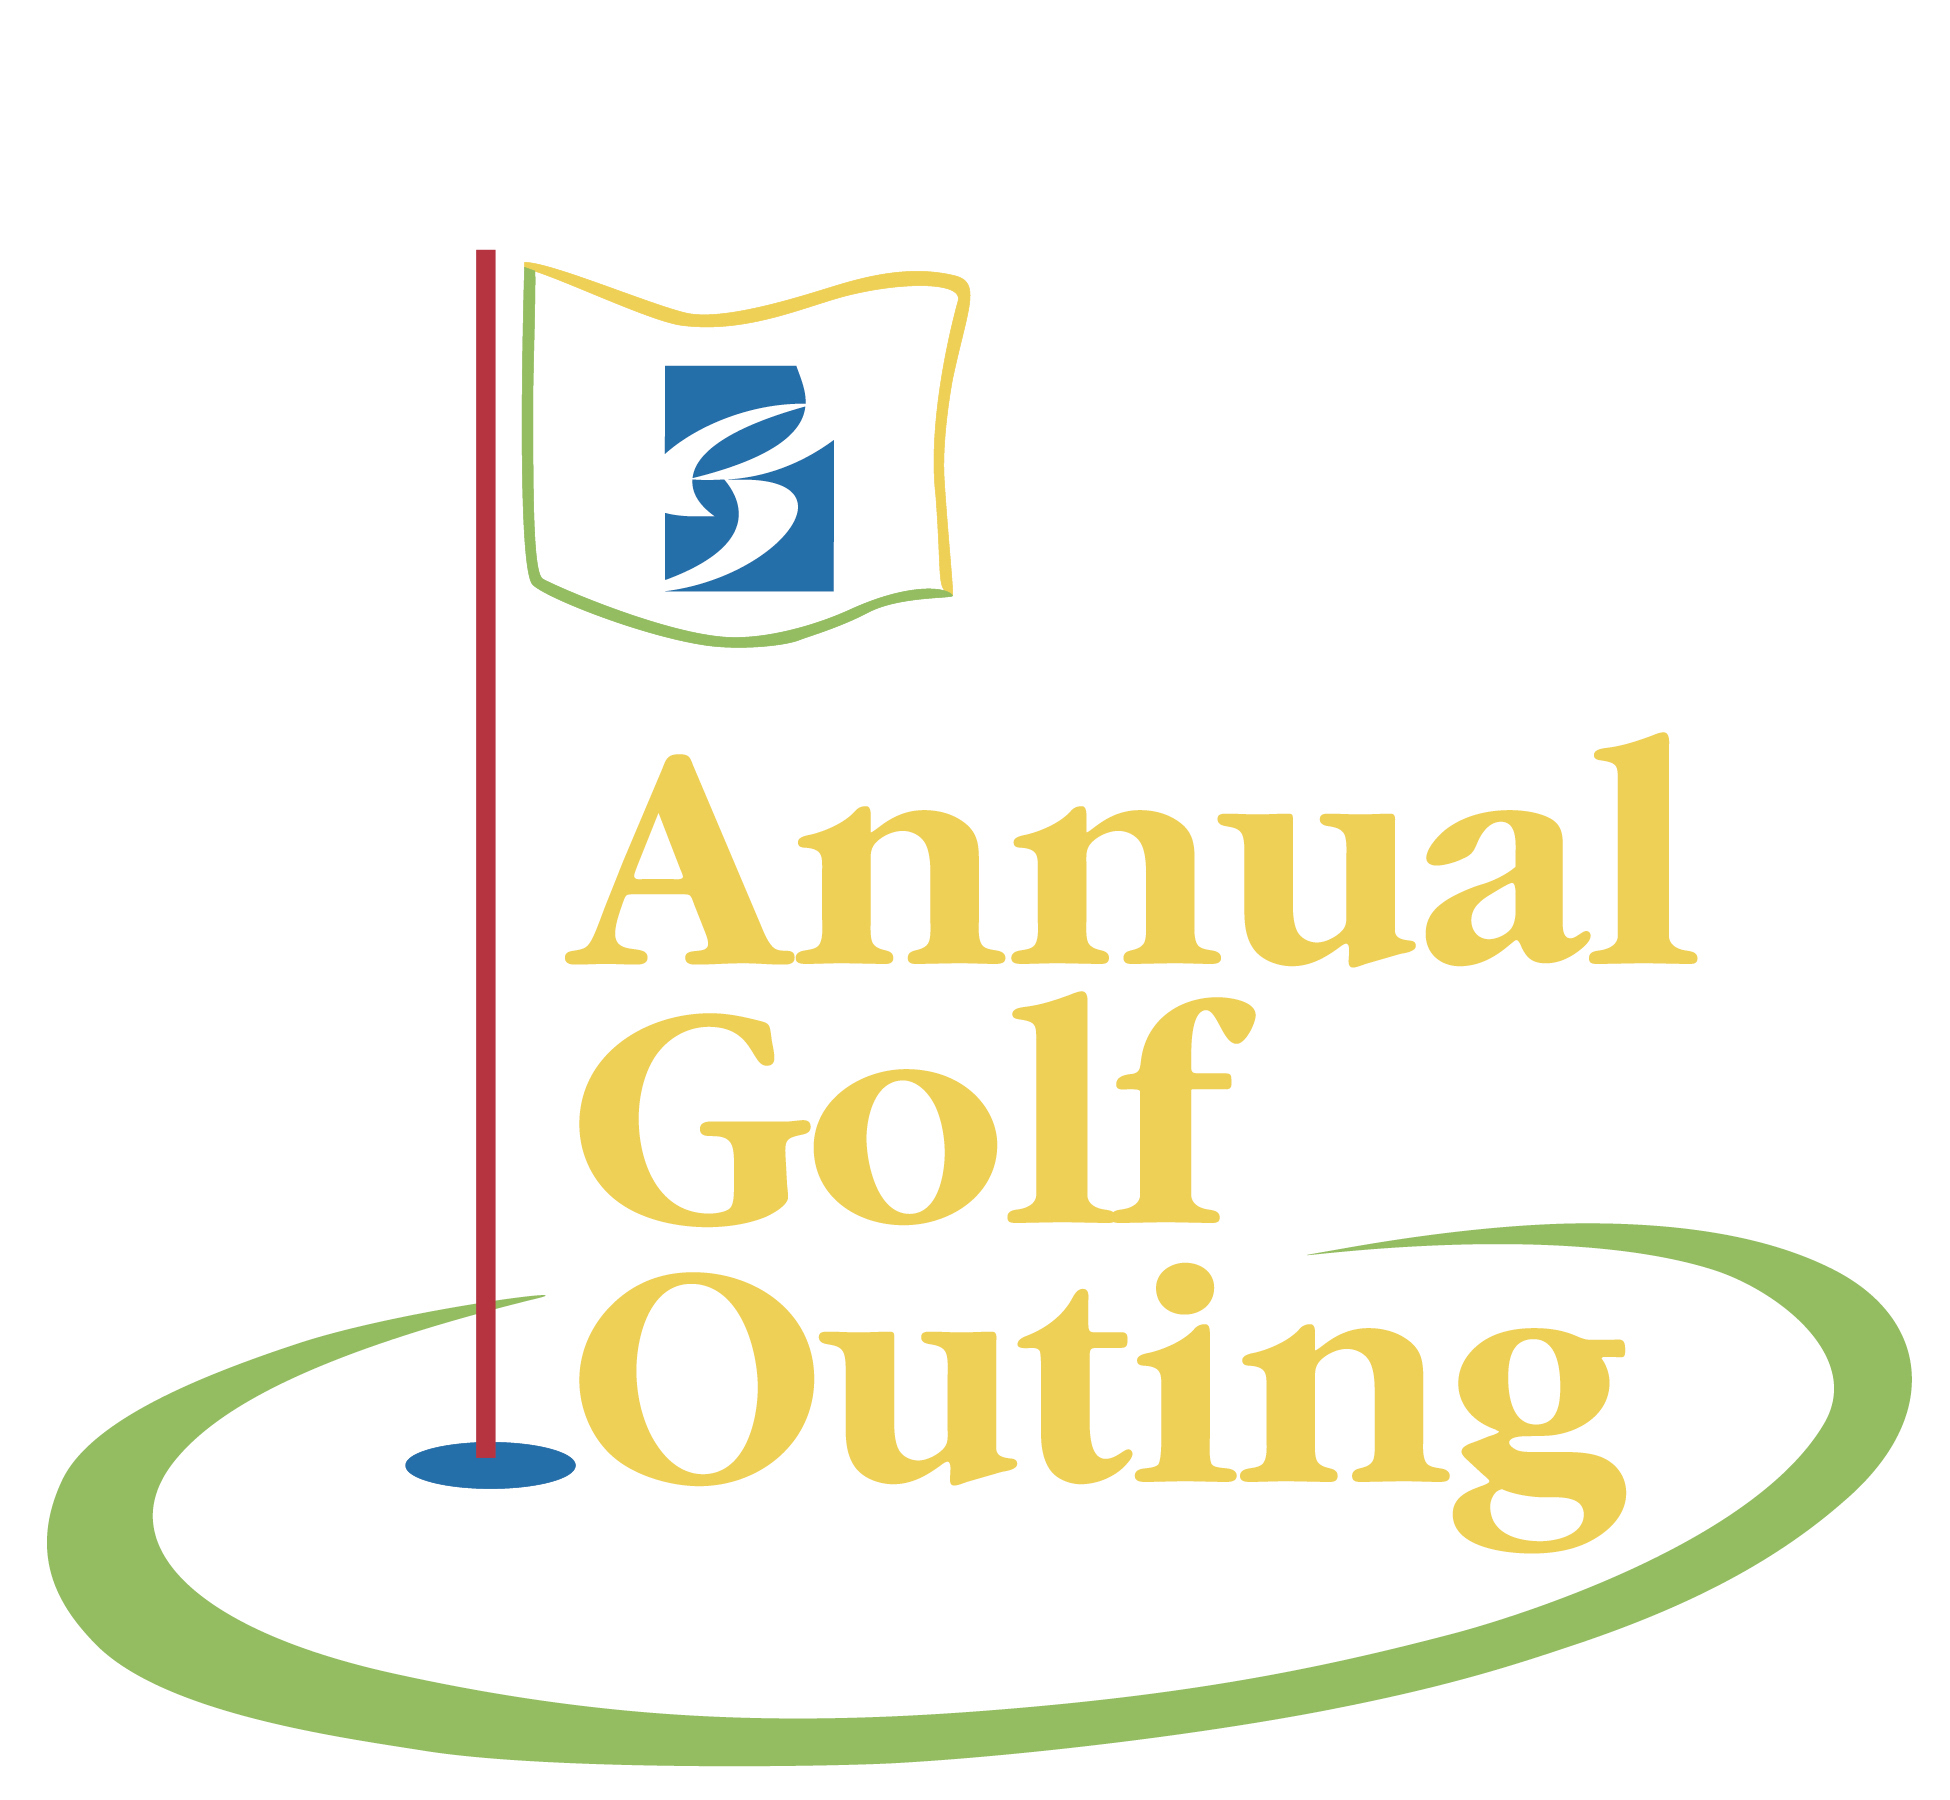 graphic design - annual golf outing logo